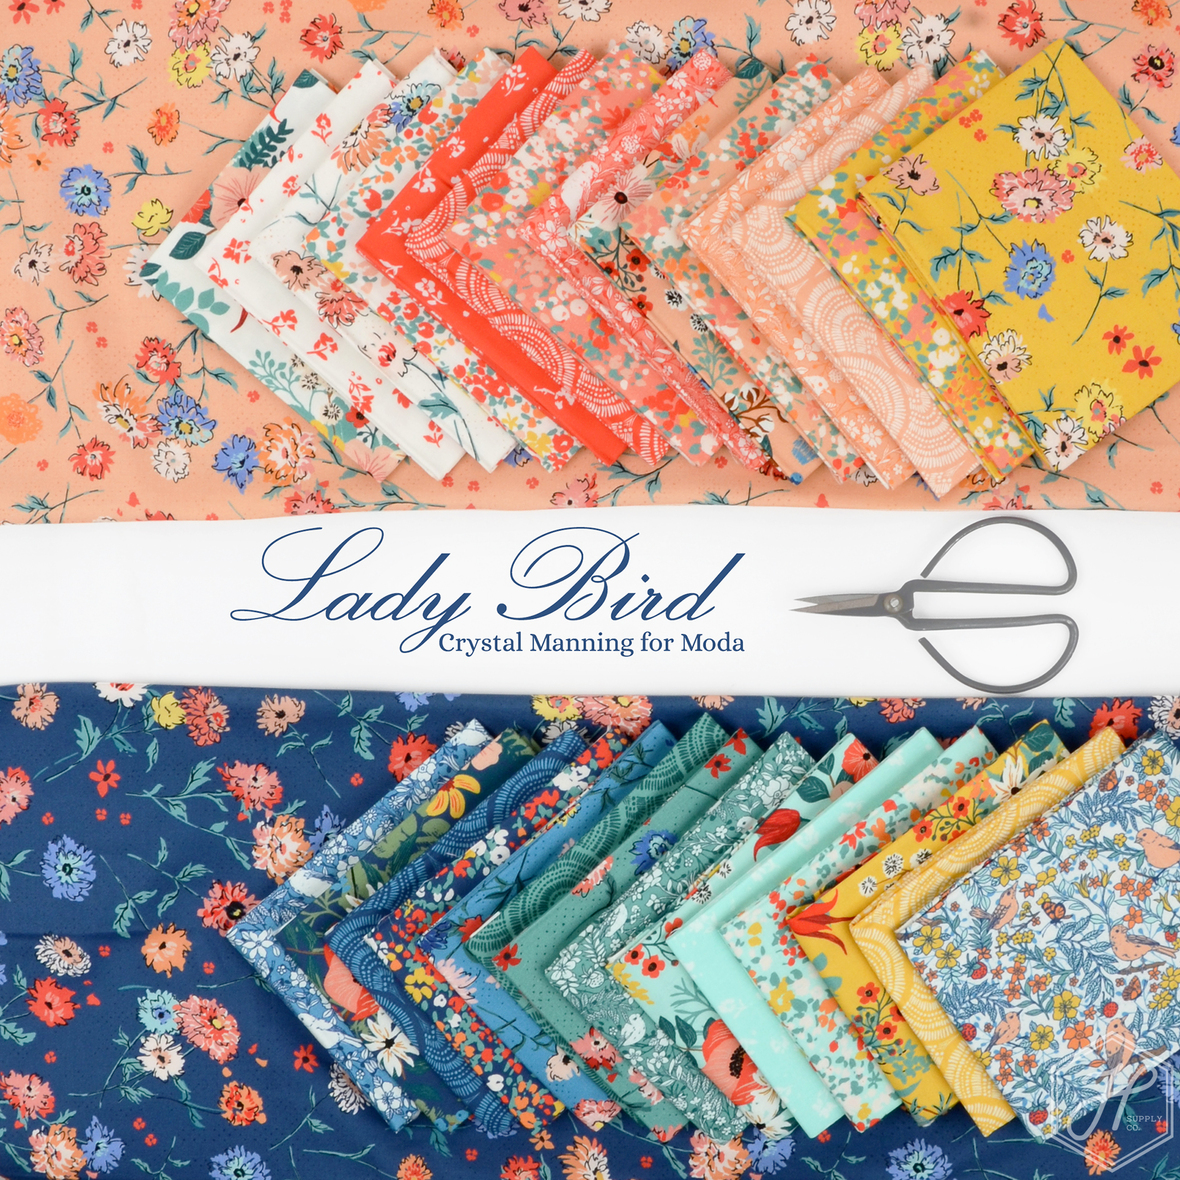 Lady Bird fabric by Crystal Manning for Moda at Hawthorne Supply Co